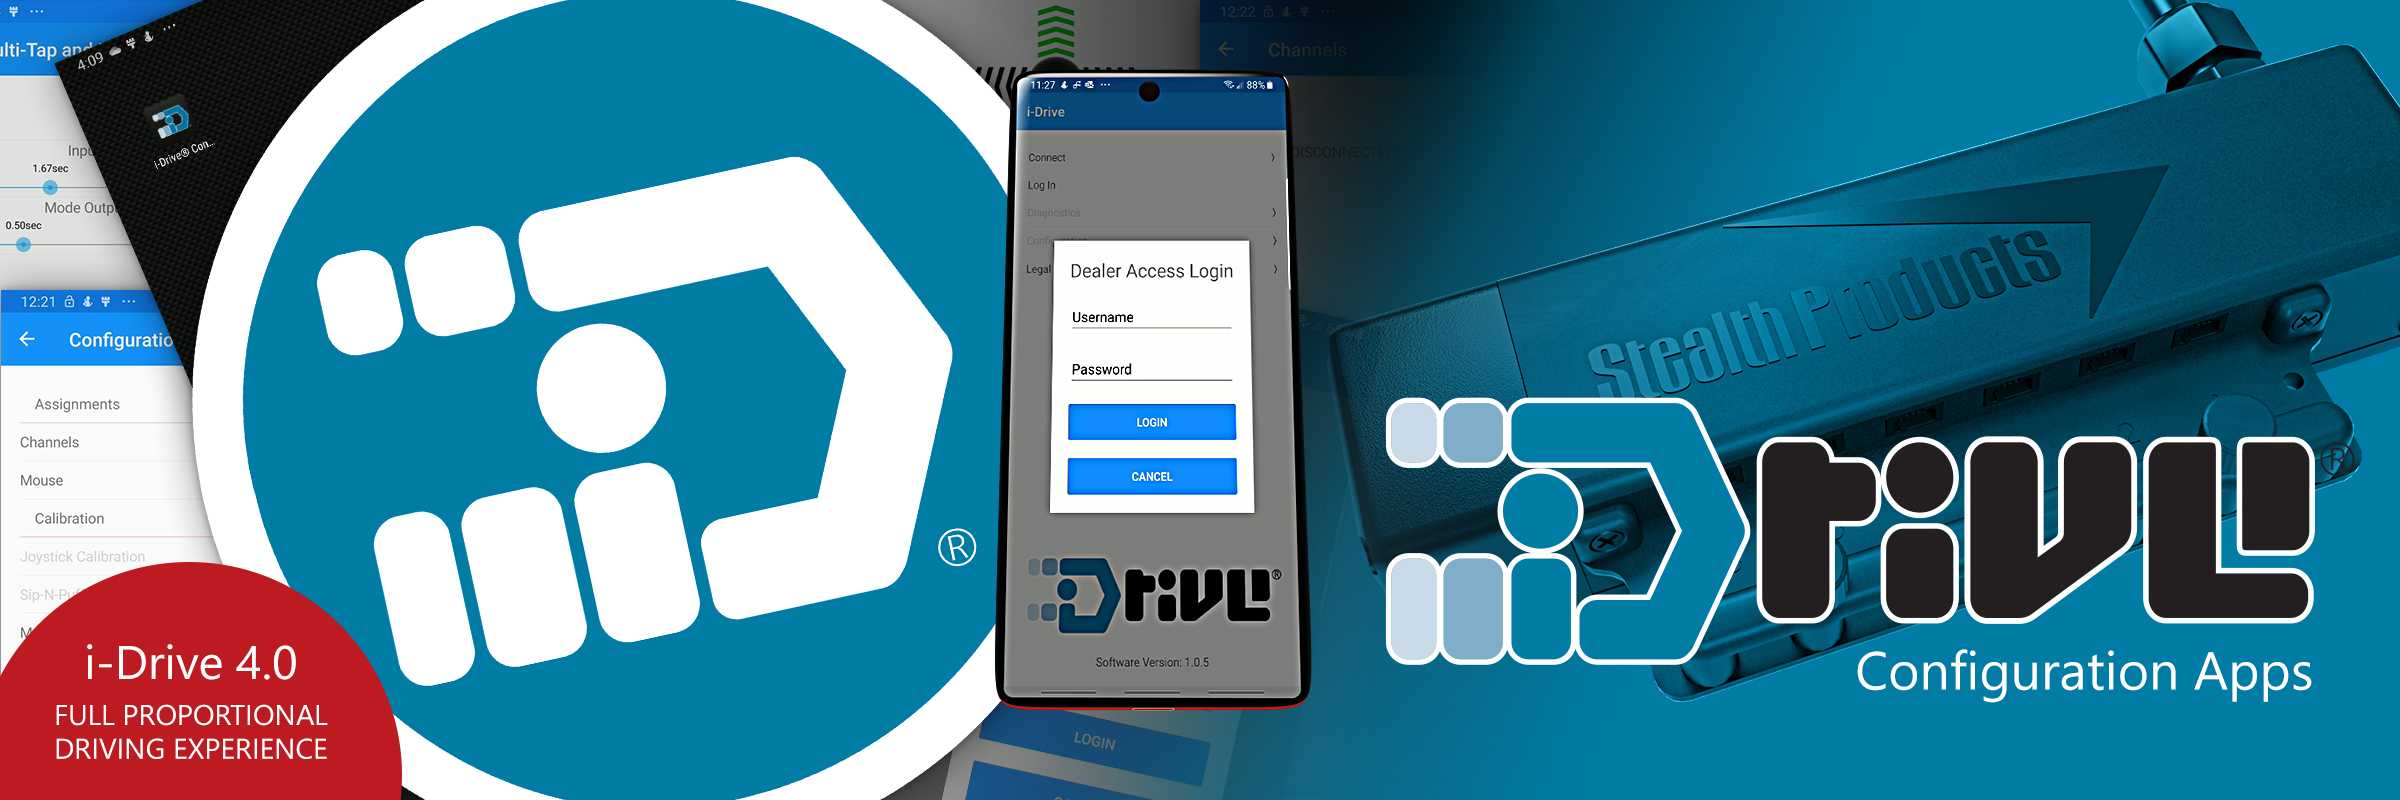 i-Drive Configuration Software for Android, iOS and Windows